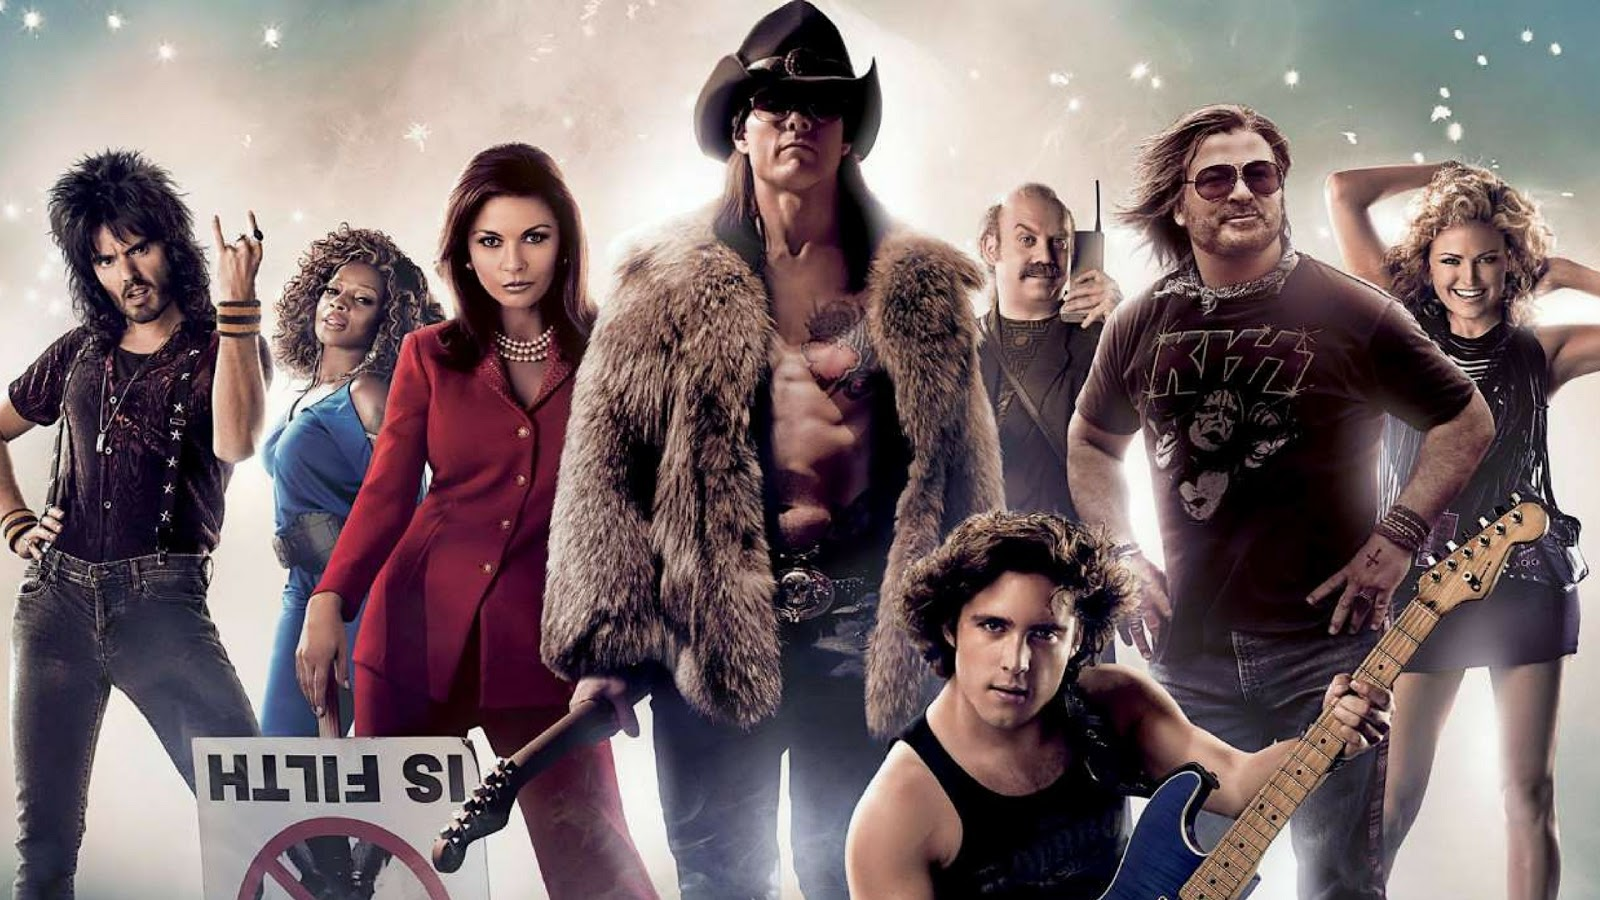 musical, movies, favourite, holiday, 80s, panasonic, 4k hd, rock of ages, broadway